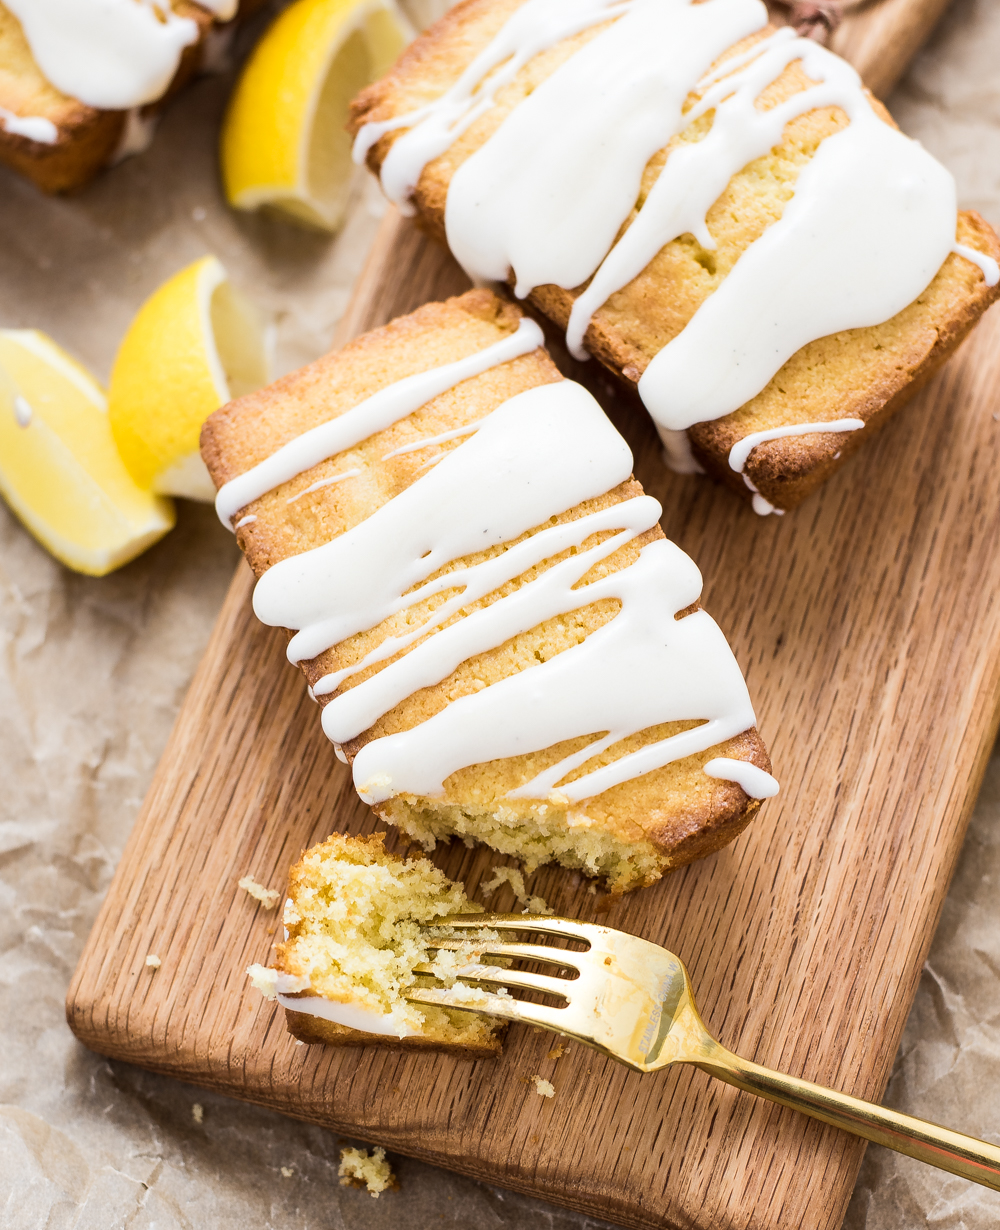 Mini Lemon Pound Cakes are sweet little cakes that can satisfy just about anyone's sweet tooth!